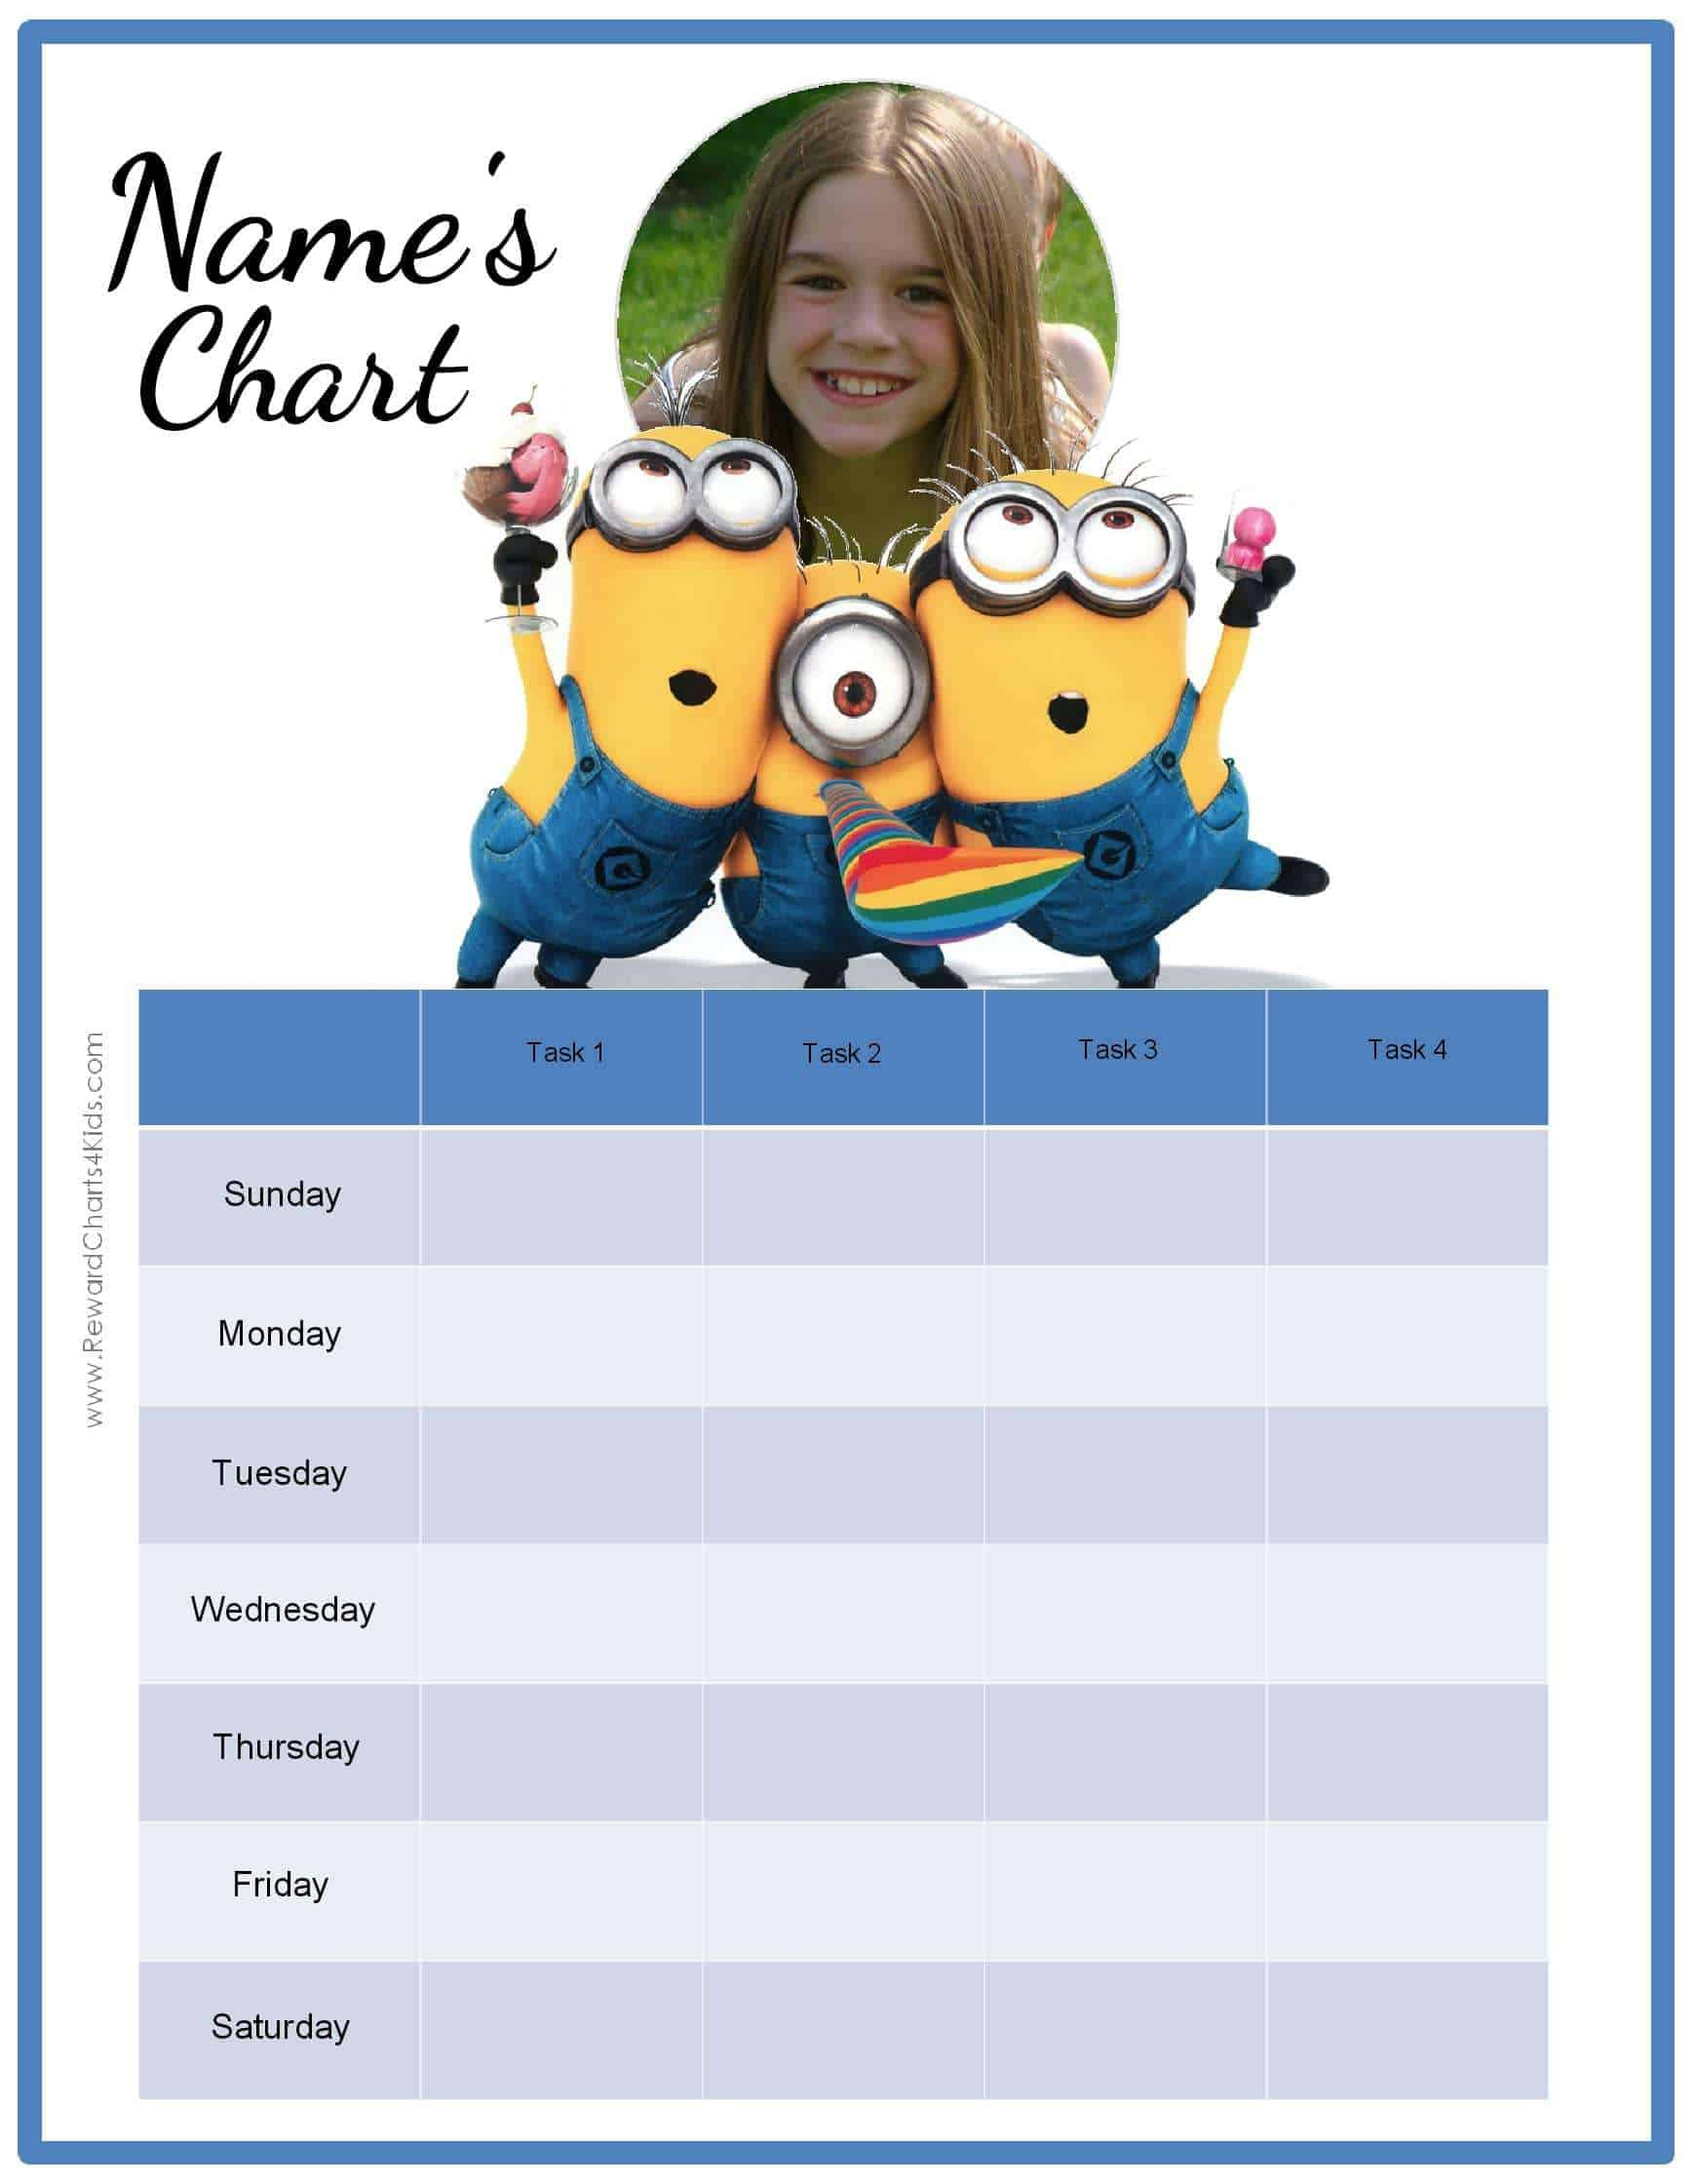 behavior charts the minions chore chart customize reward chart customize potty training chart customize